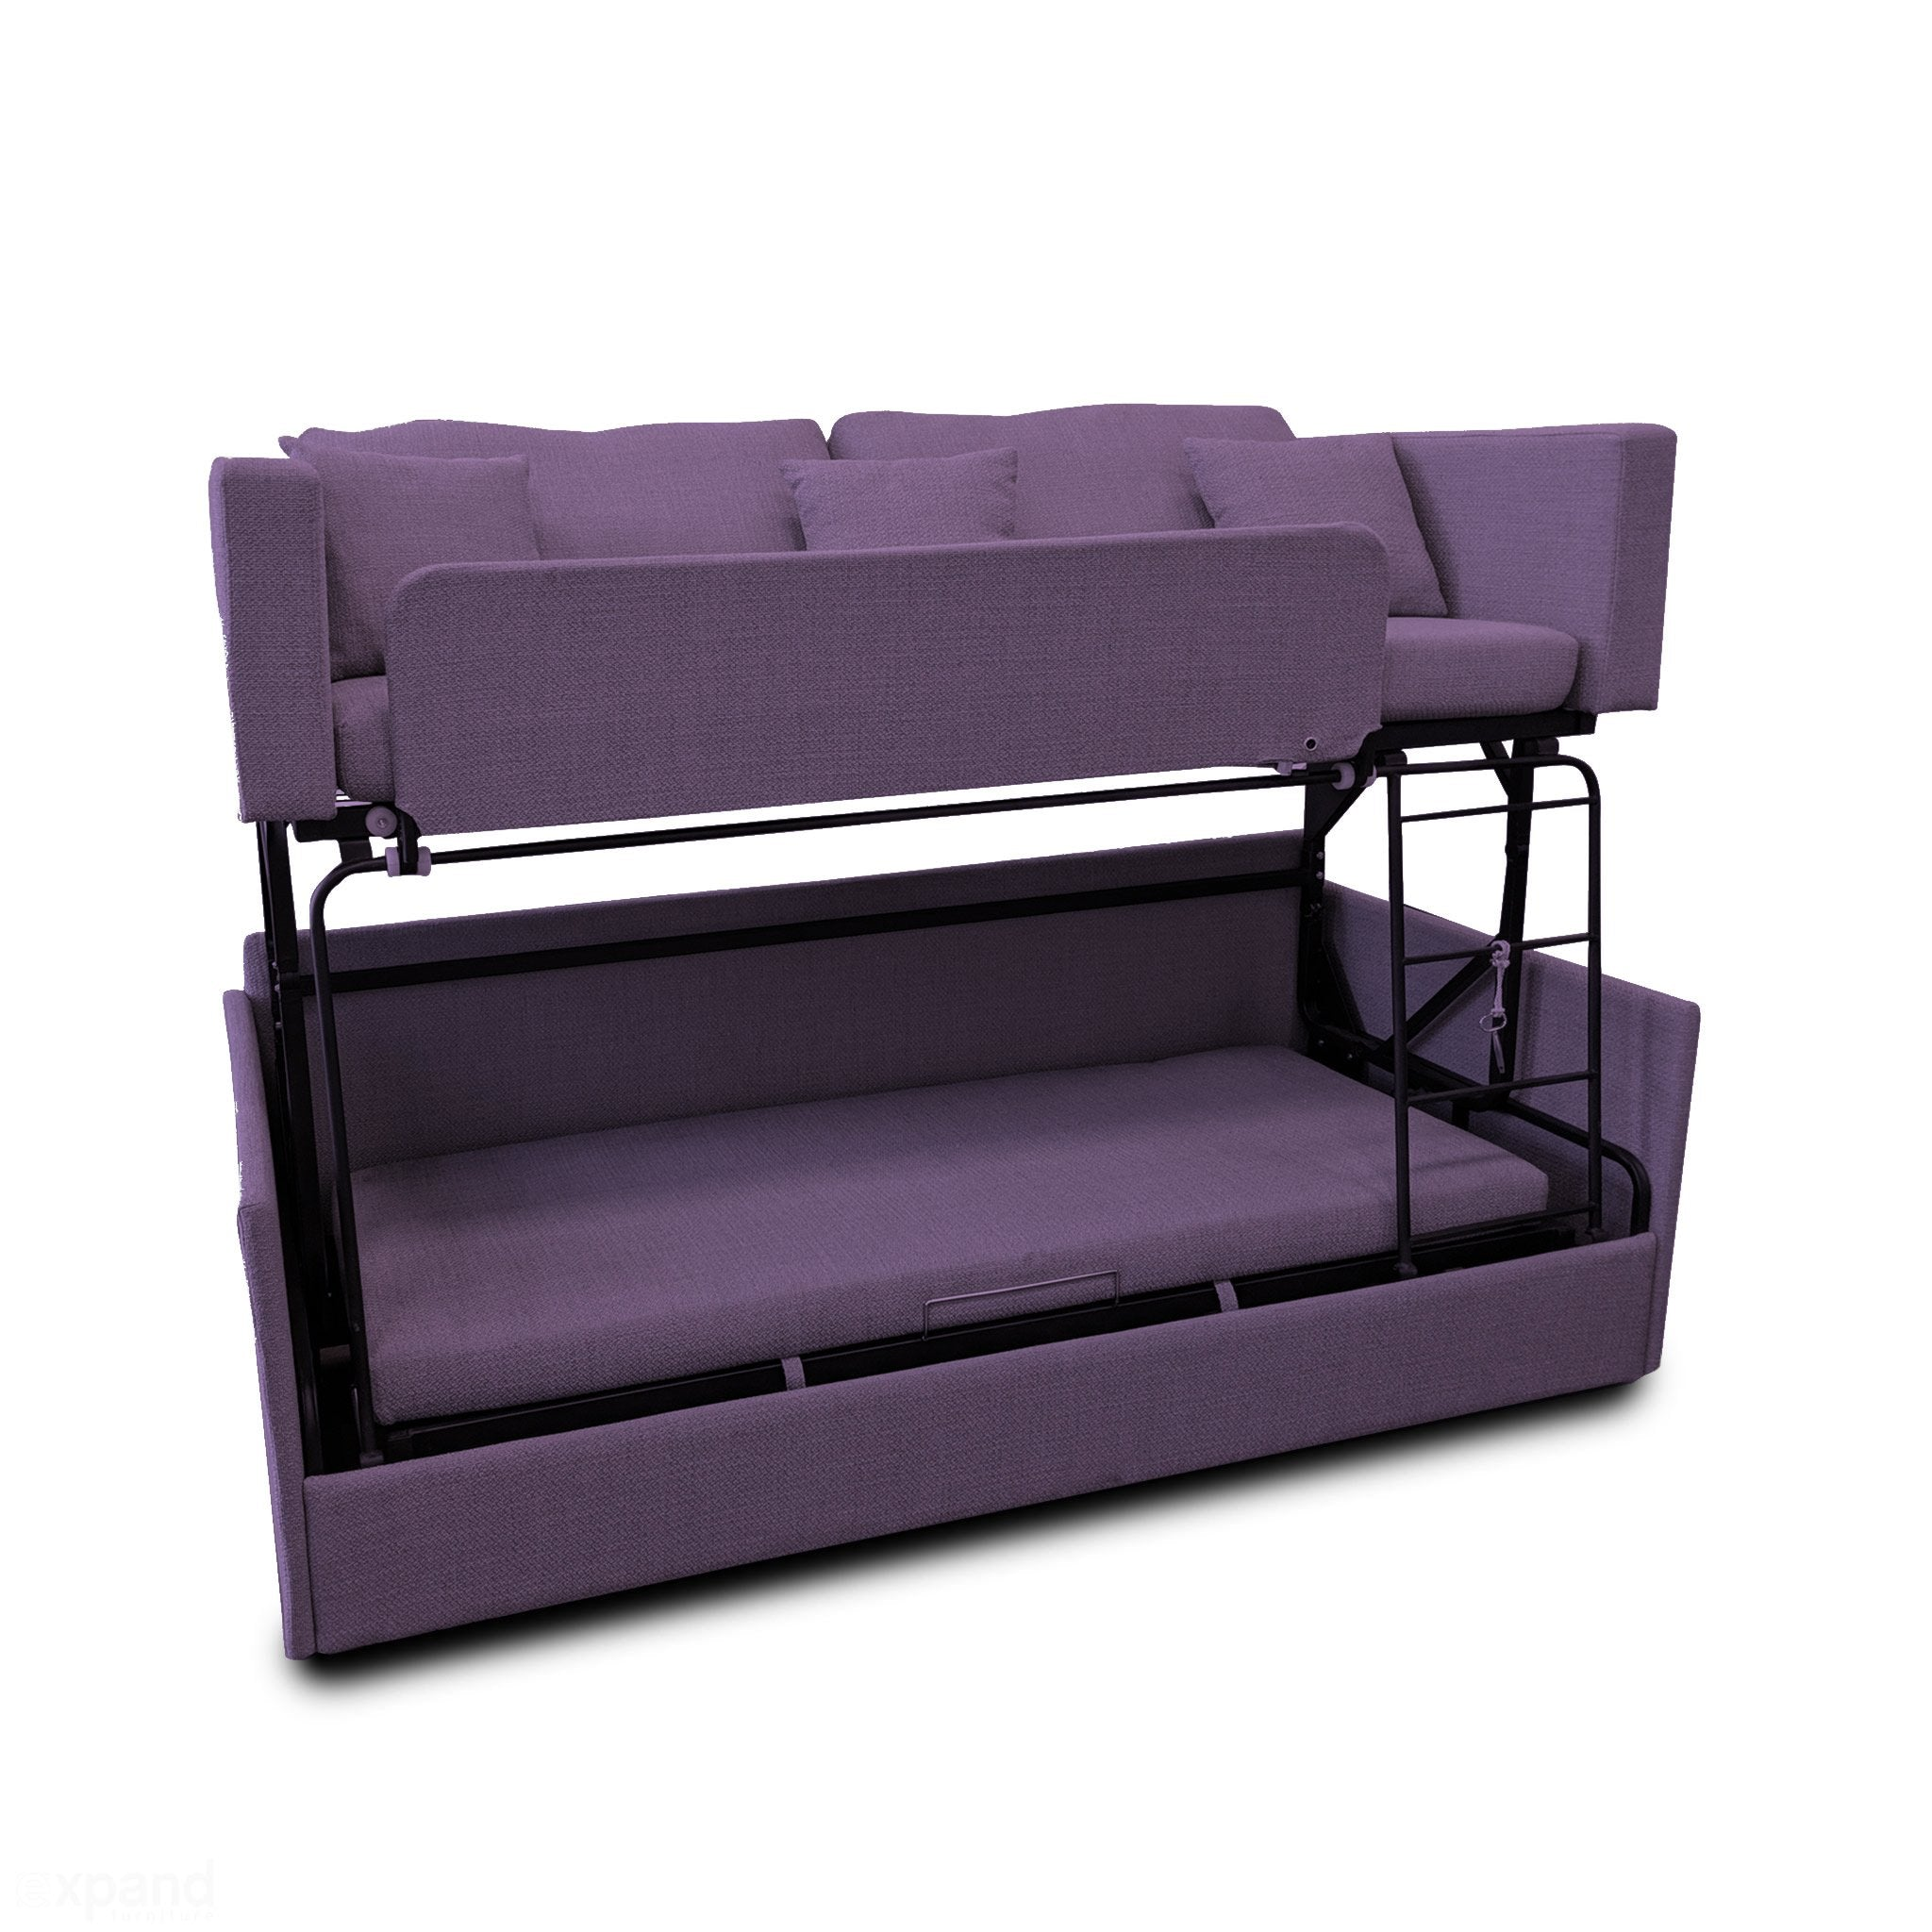 Miraculous Bunk Bed Couch Transformer Wiejfhwegoui Gmtry Best Dining Table And Chair Ideas Images Gmtryco